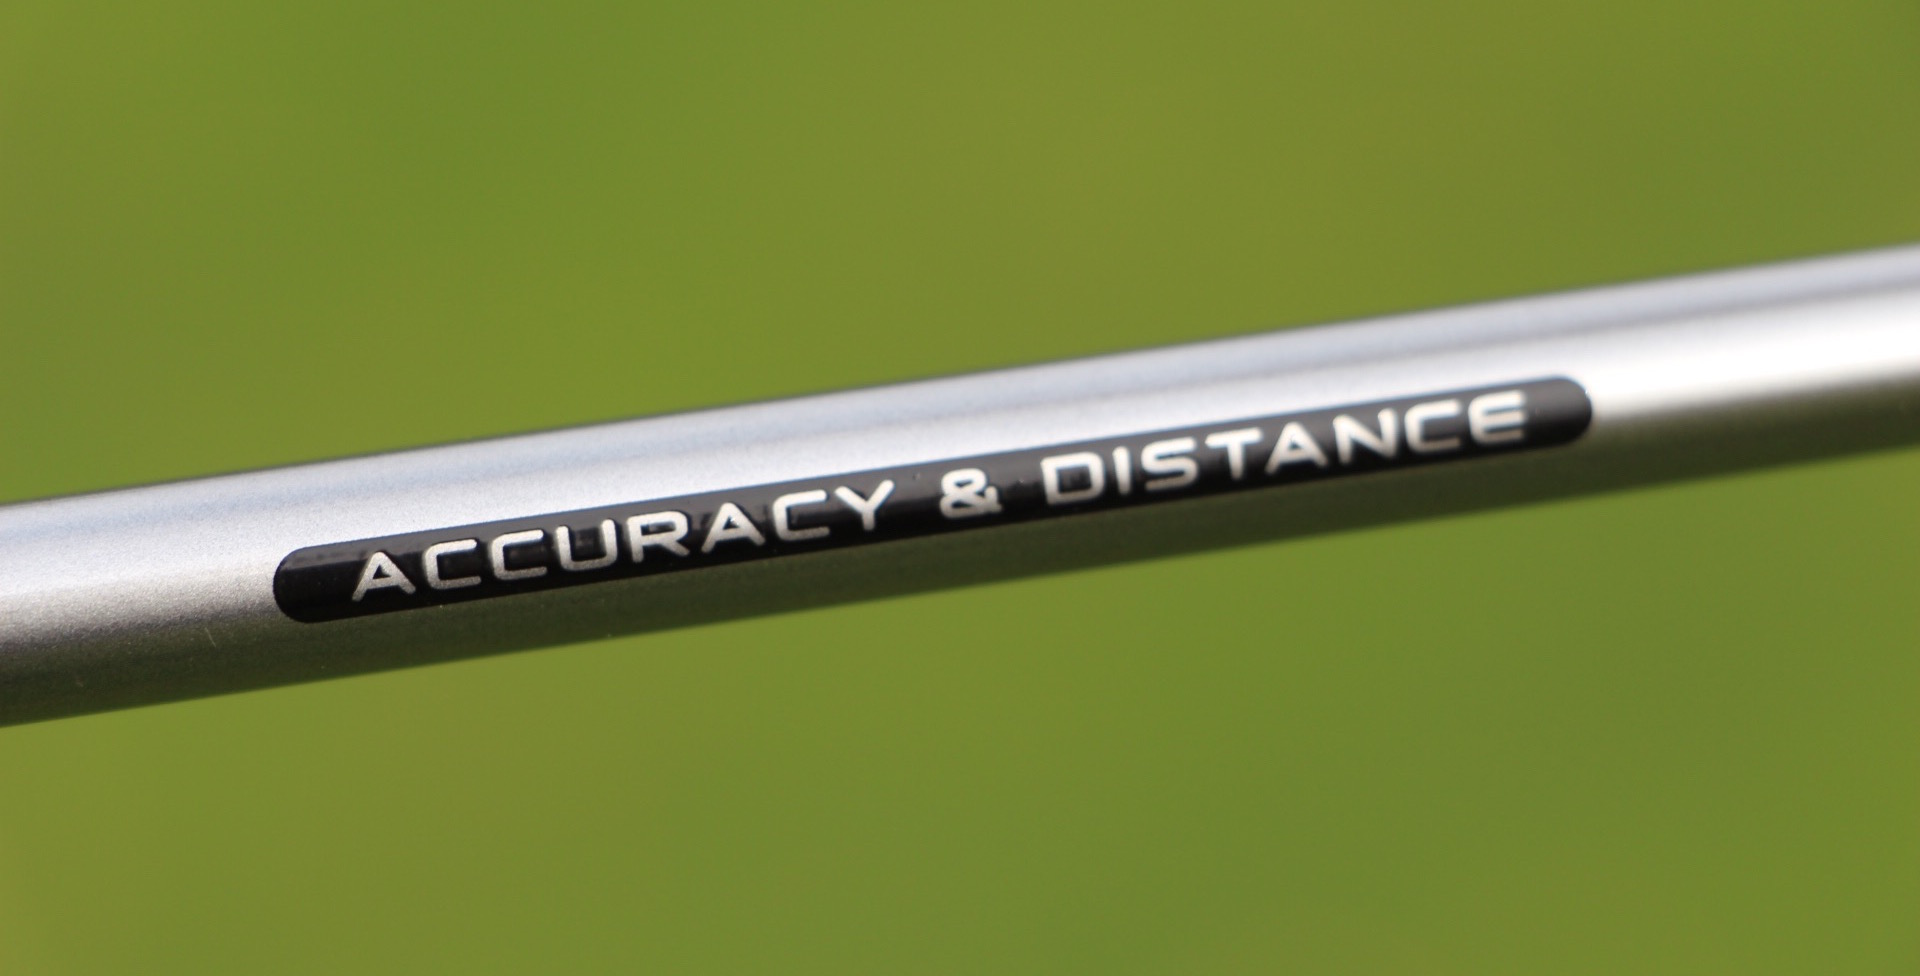 Accuracy_and_Distance